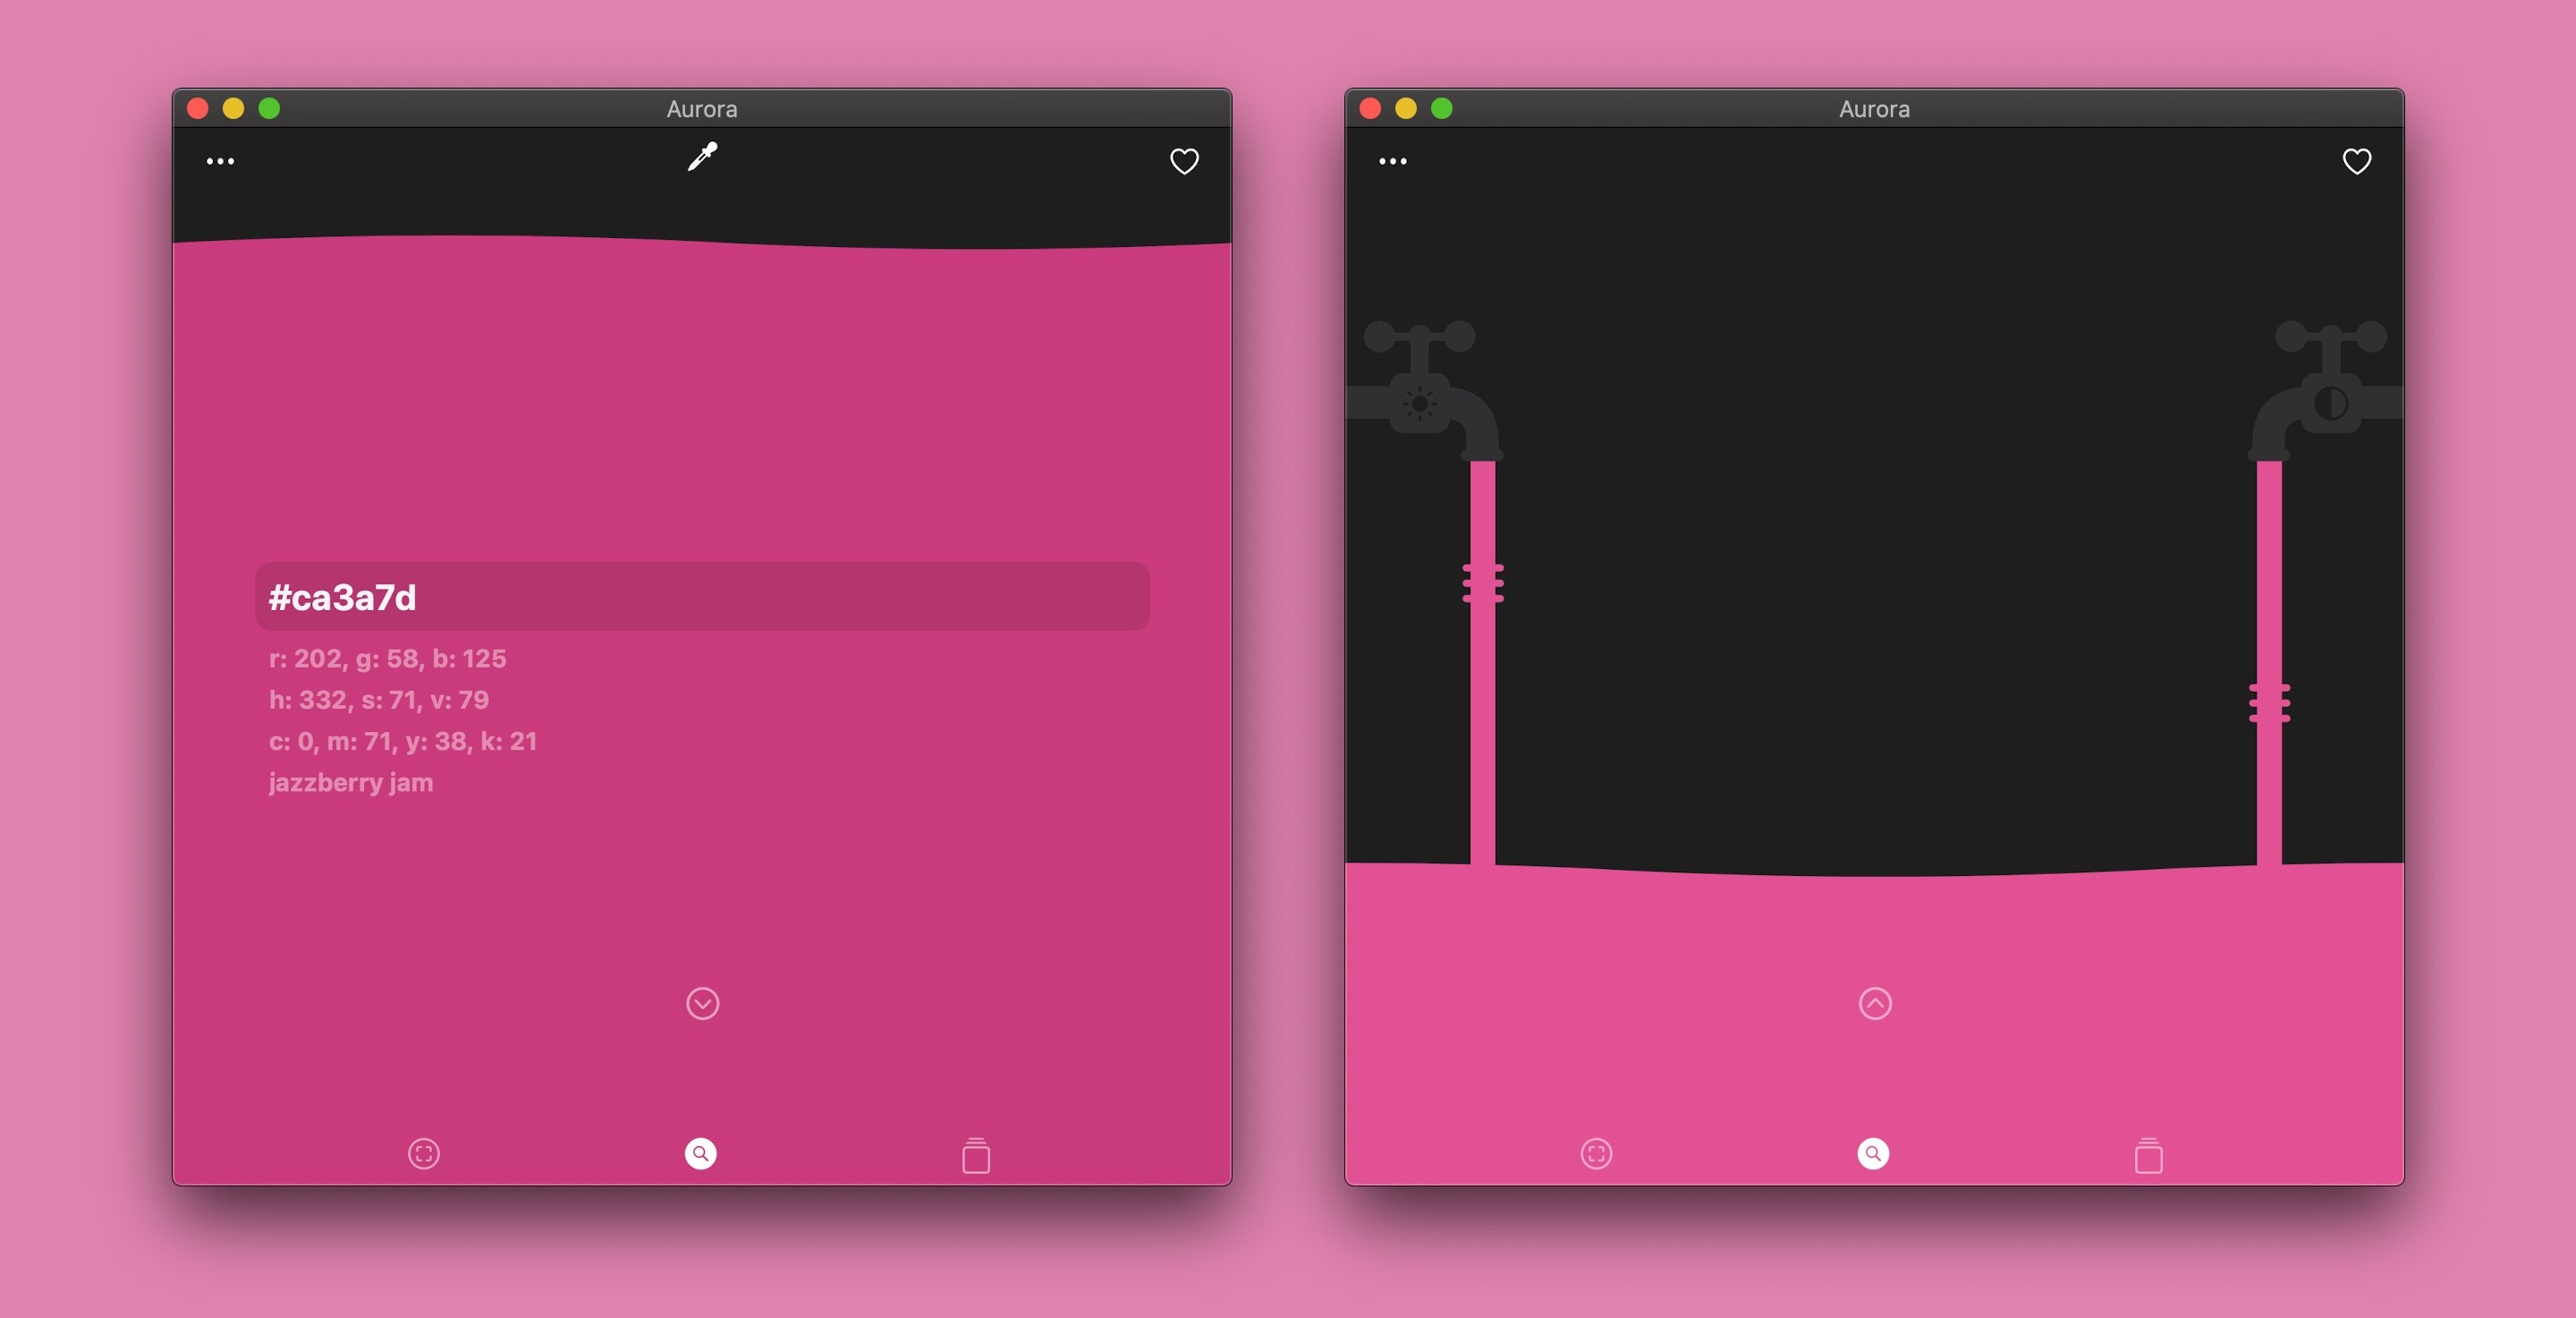 Aurora is a powerful new color picker for iPhone, iPad, Mac and Apple Watch